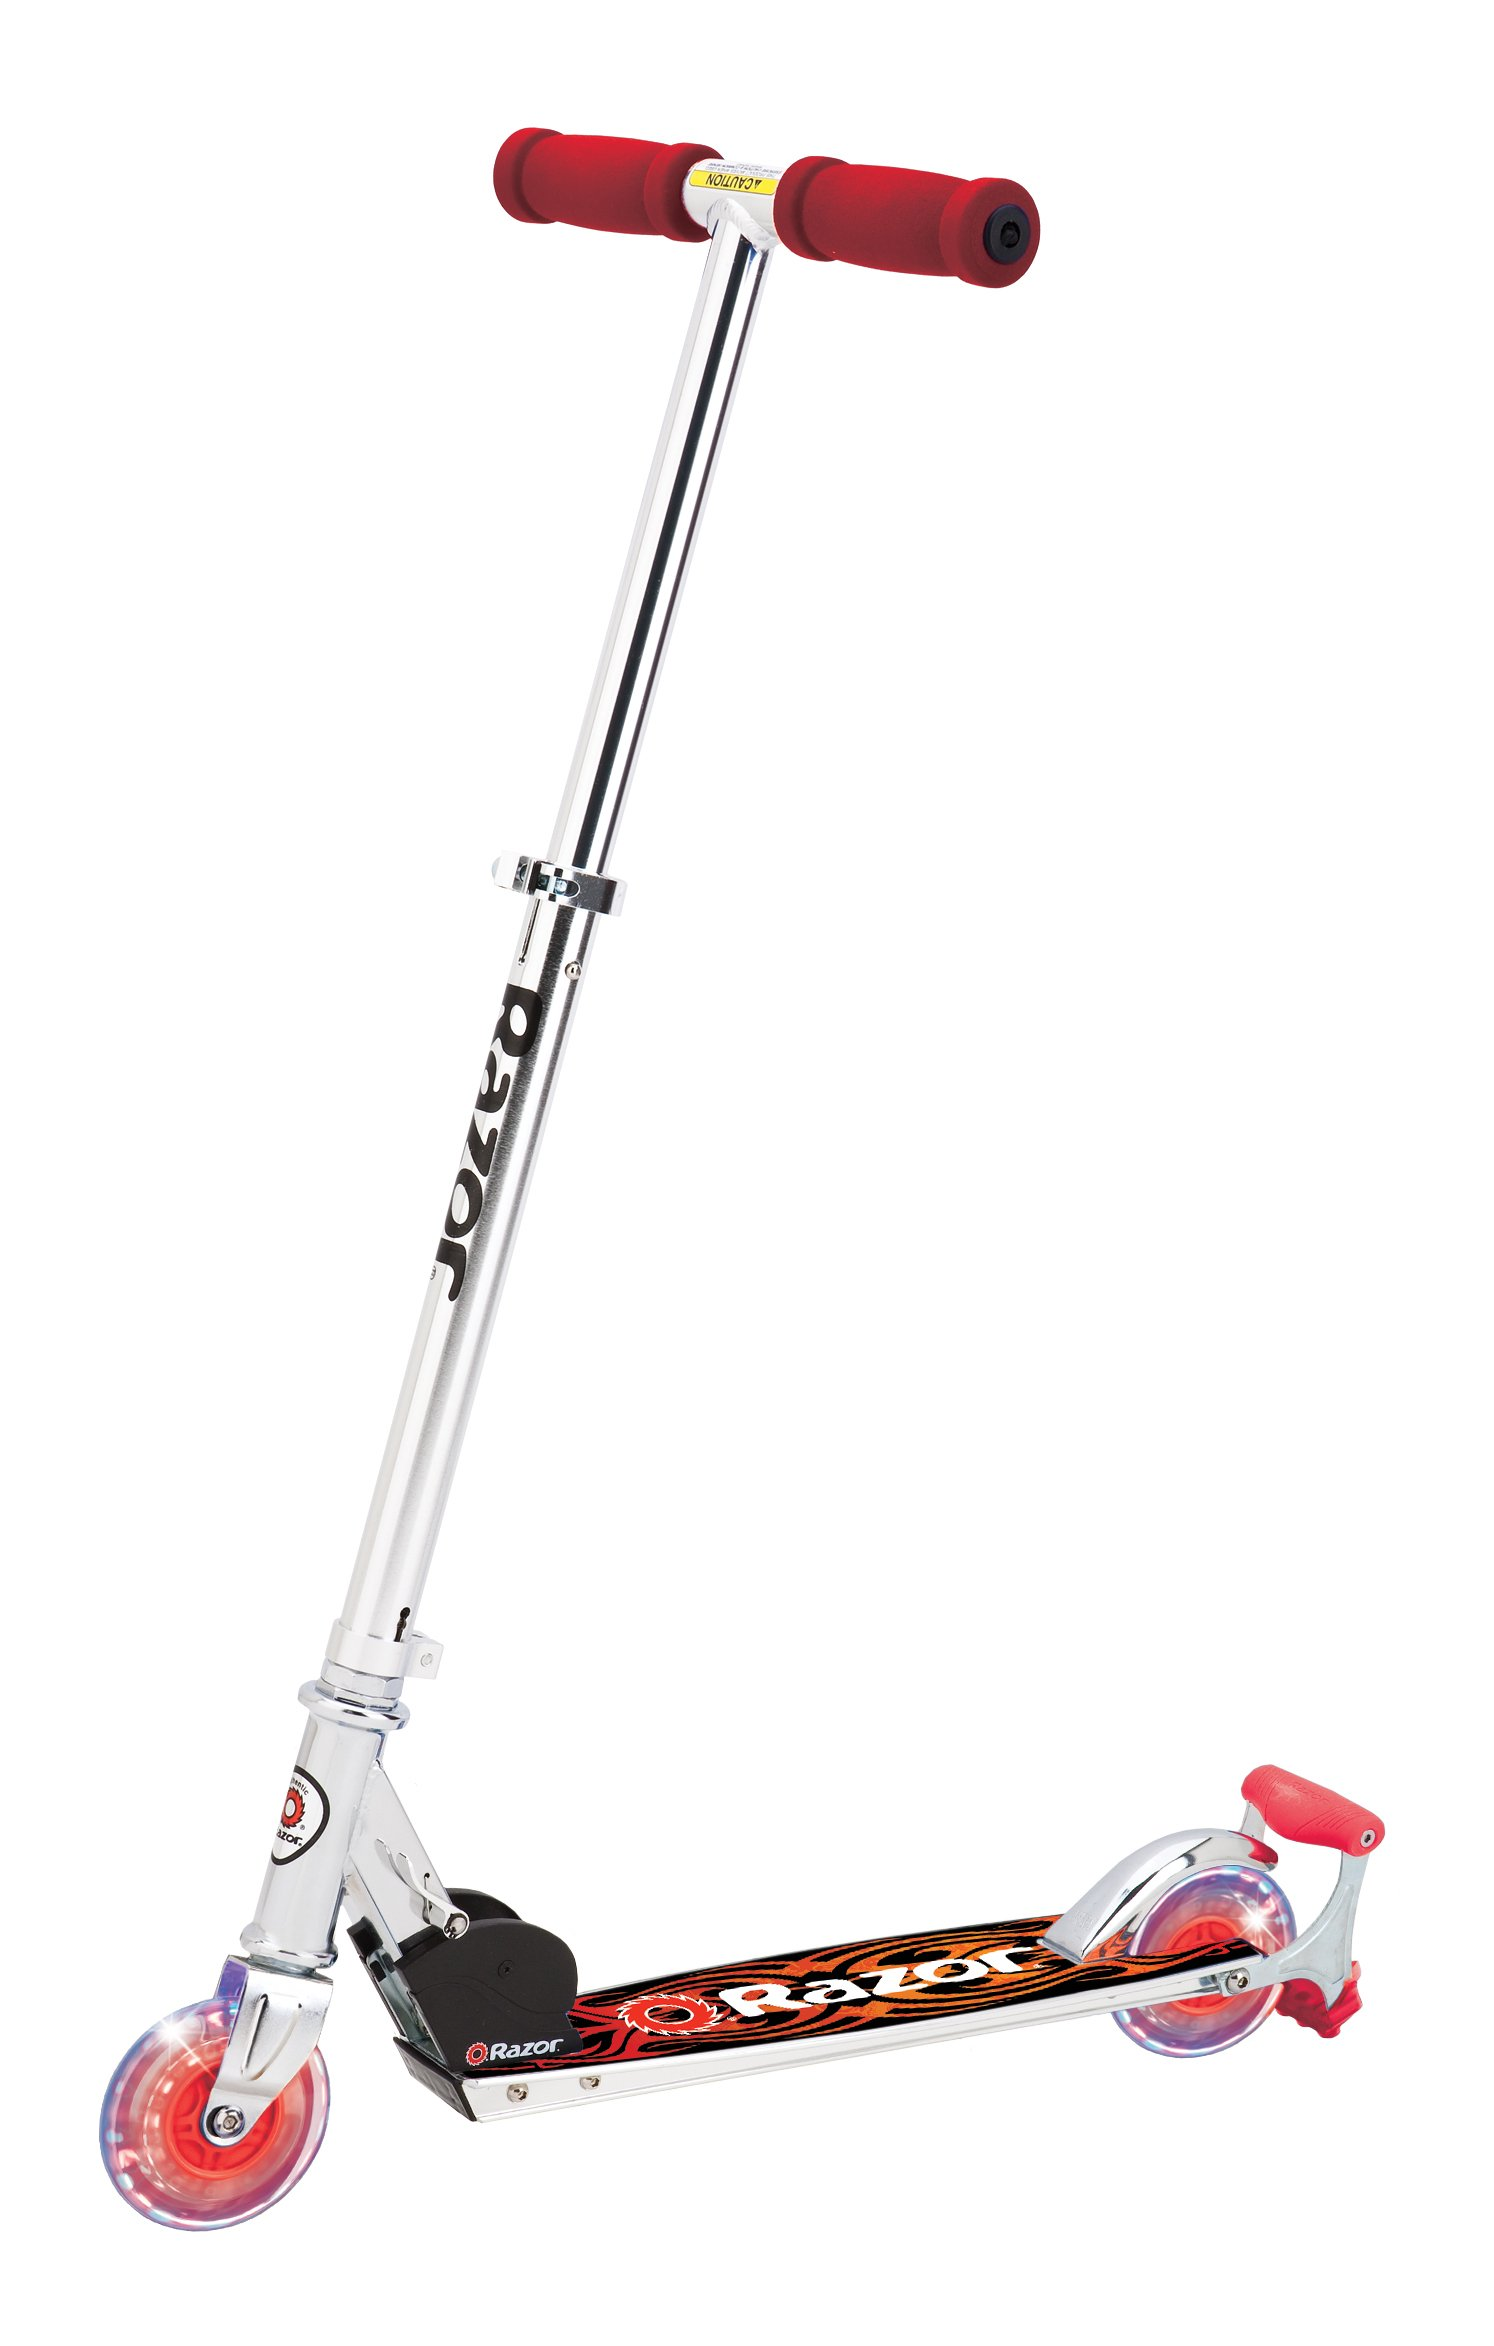 Razor Spark DLX Scooter, Red